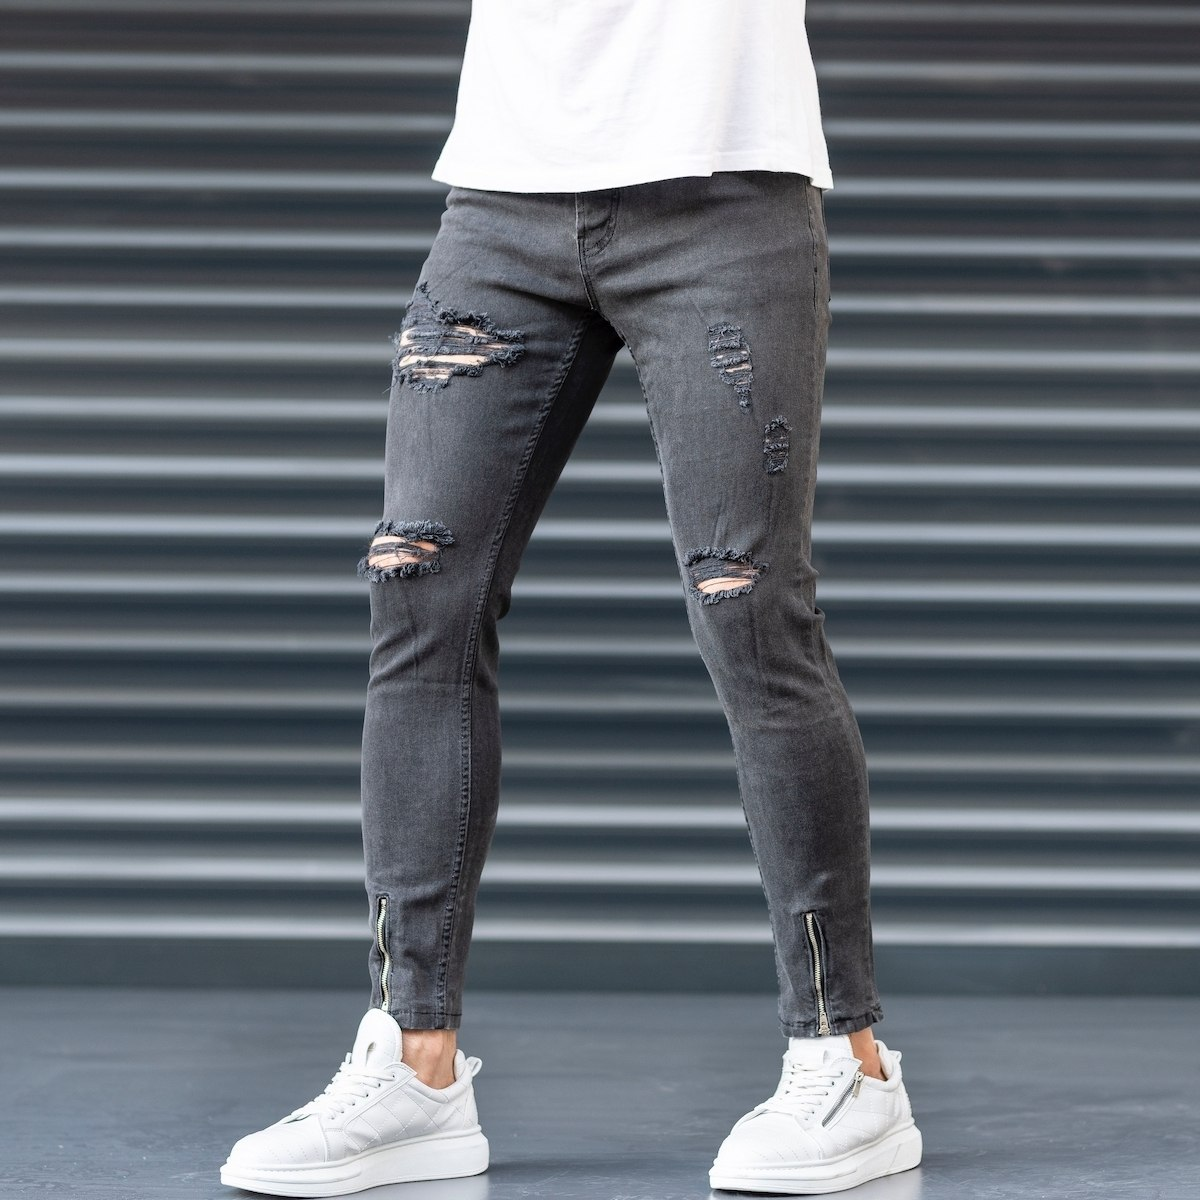 Men's  Jeans With Rips In...